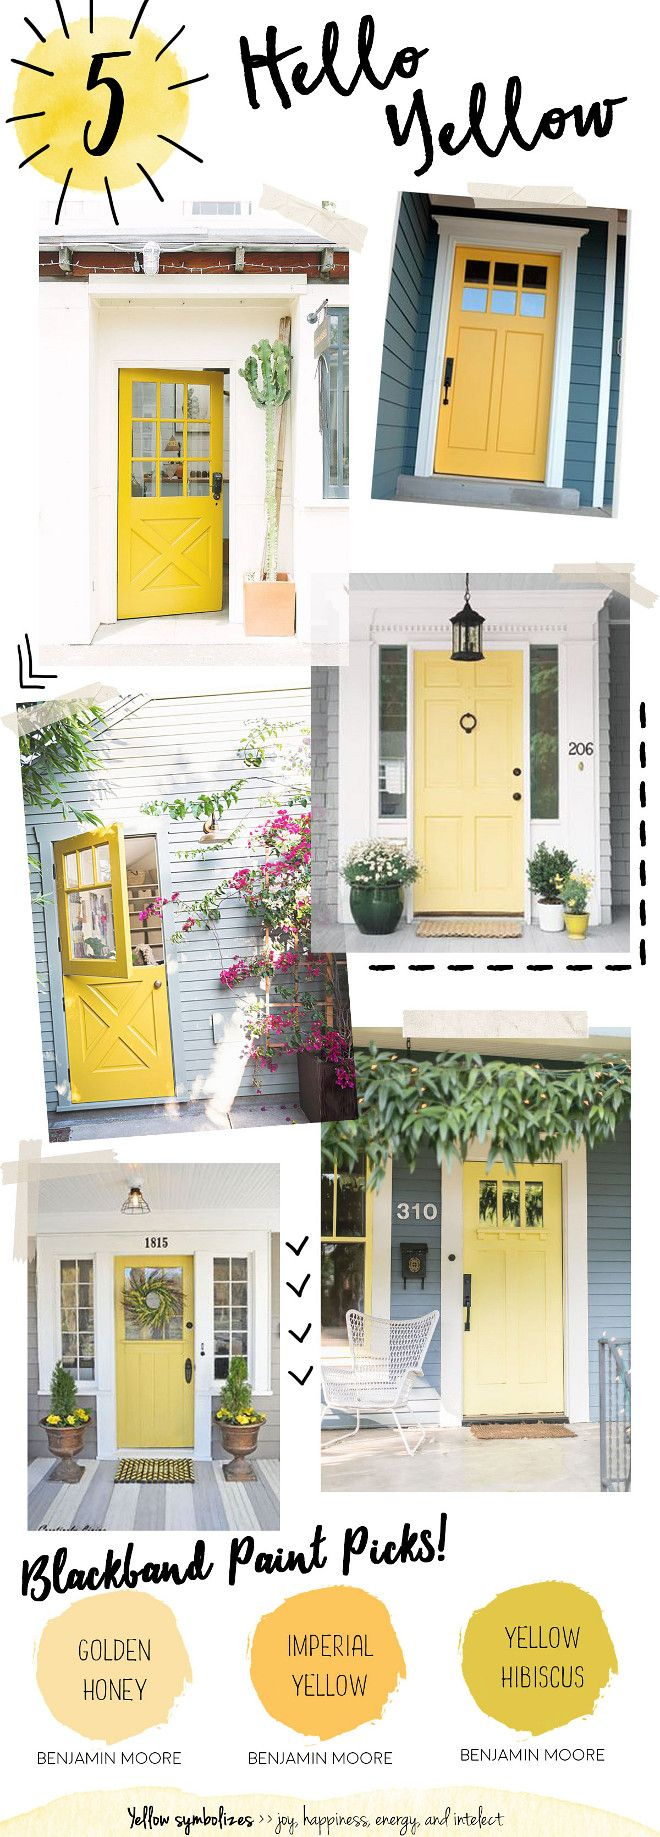 Benjamin moore front door paint colors - Yellow Door Paint Color Yellow Front Door Paint Color Benjamin Moore Golden Honey